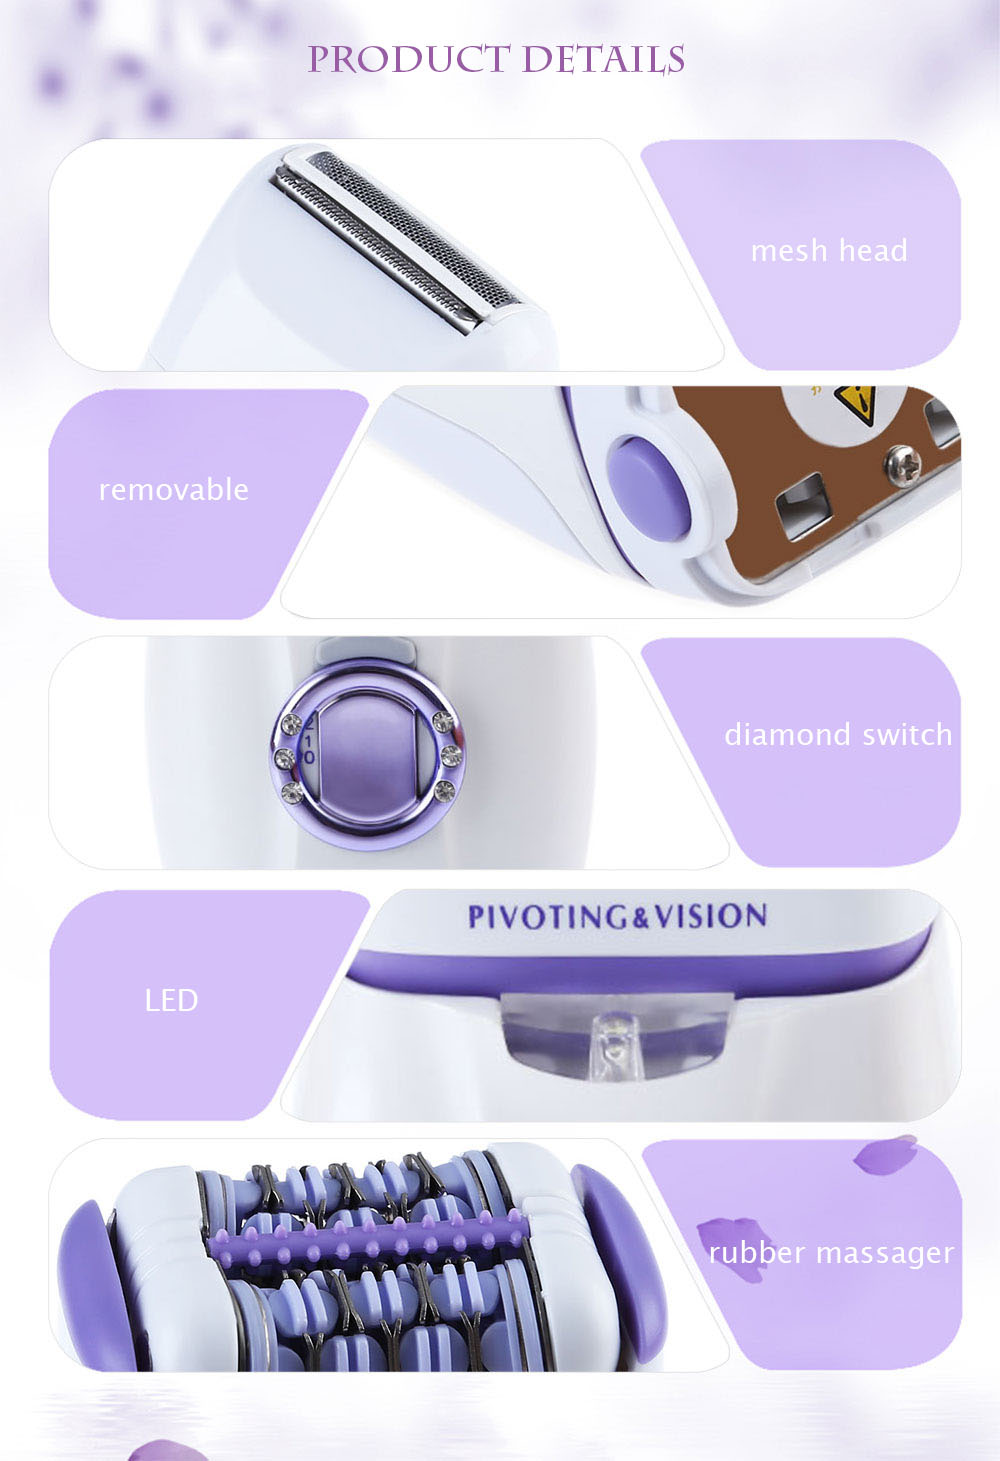 Kemei KM - 2668 Rechargeable Electric Skin-friendly Hair Remover Shaver Defeatherer Body Face Leg Depilatory Epilator for Lady